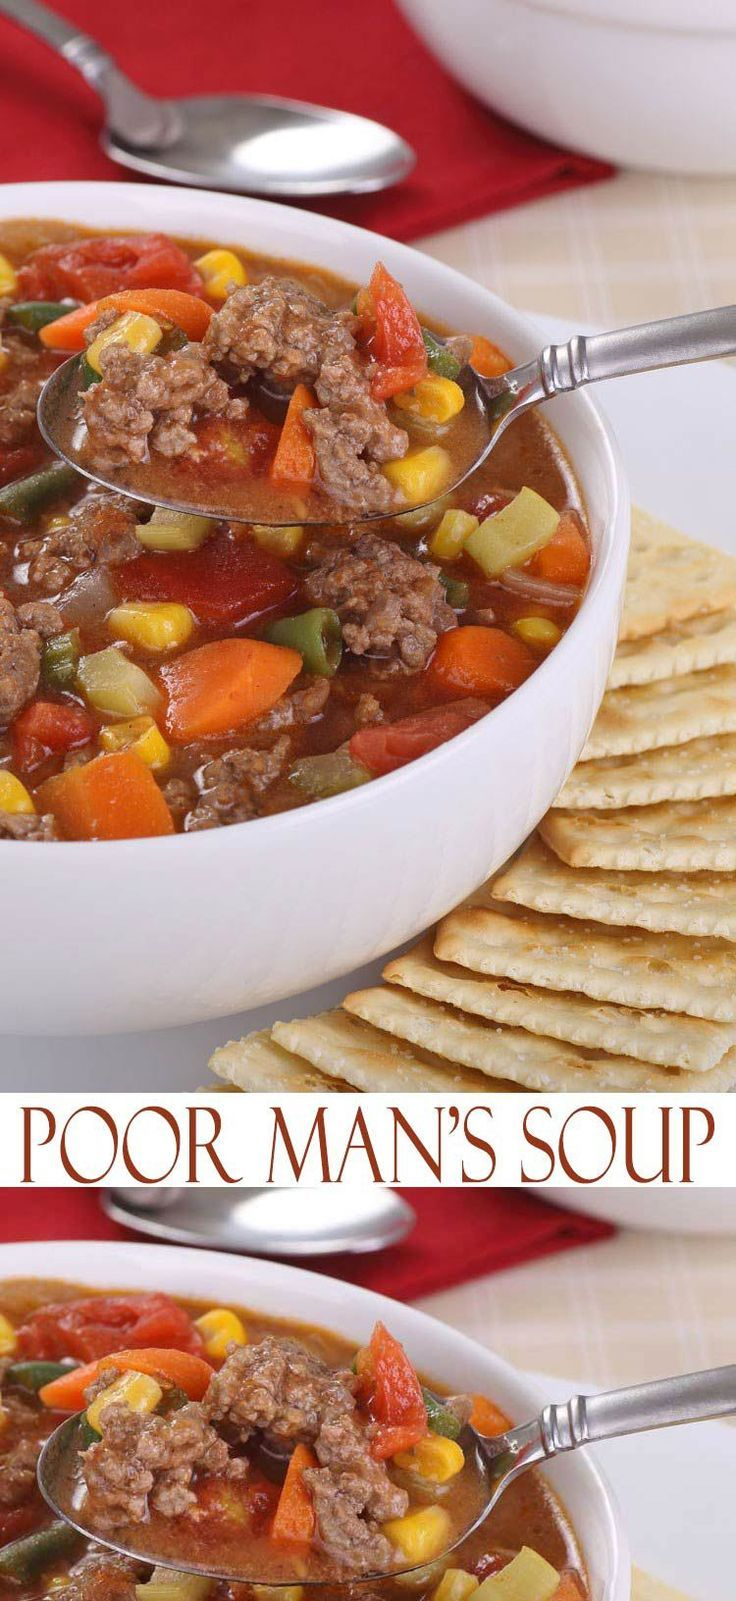 Poor Man's Soup Recipe. Poor Man's Soup recipe is a simple soup recipe with budget ingredients that is easy to make with ingredients that you probably already have at home. Feed a family on a budget with this easy soup recipe. Budget meal great!